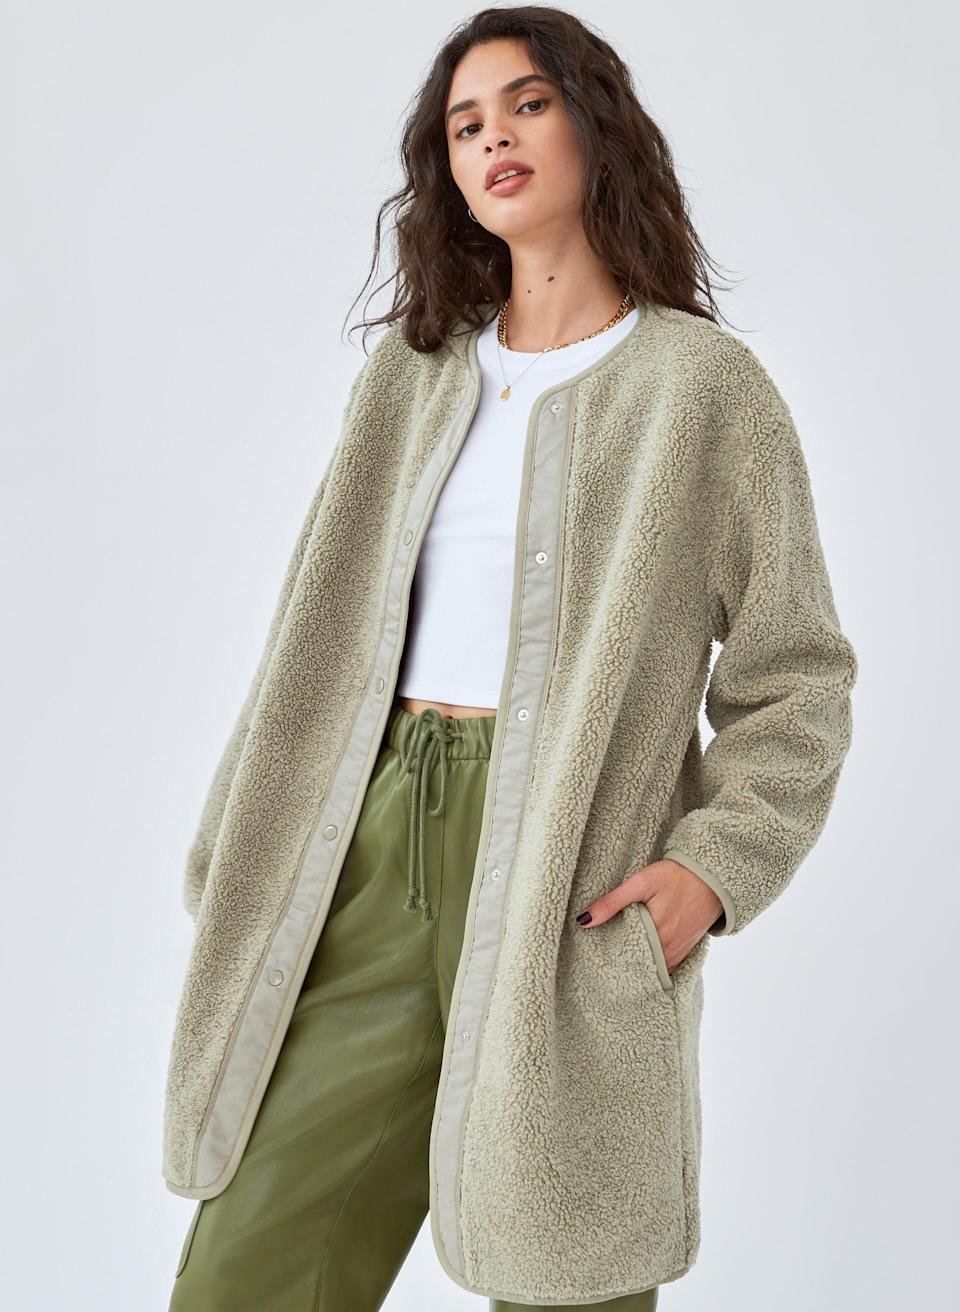 """Lean into the earthy autumnal vibes with this collarless jacket that's ideal for stay snug on days when it's just a tad windy. $98, Aritzia. <a href=""""https://www.aritzia.com/us/en/product/sherpa-long-liner-jacket/79514.html?dwvar_79514_color=16372"""" rel=""""nofollow noopener"""" target=""""_blank"""" data-ylk=""""slk:Get it now!"""" class=""""link rapid-noclick-resp"""">Get it now!</a>"""